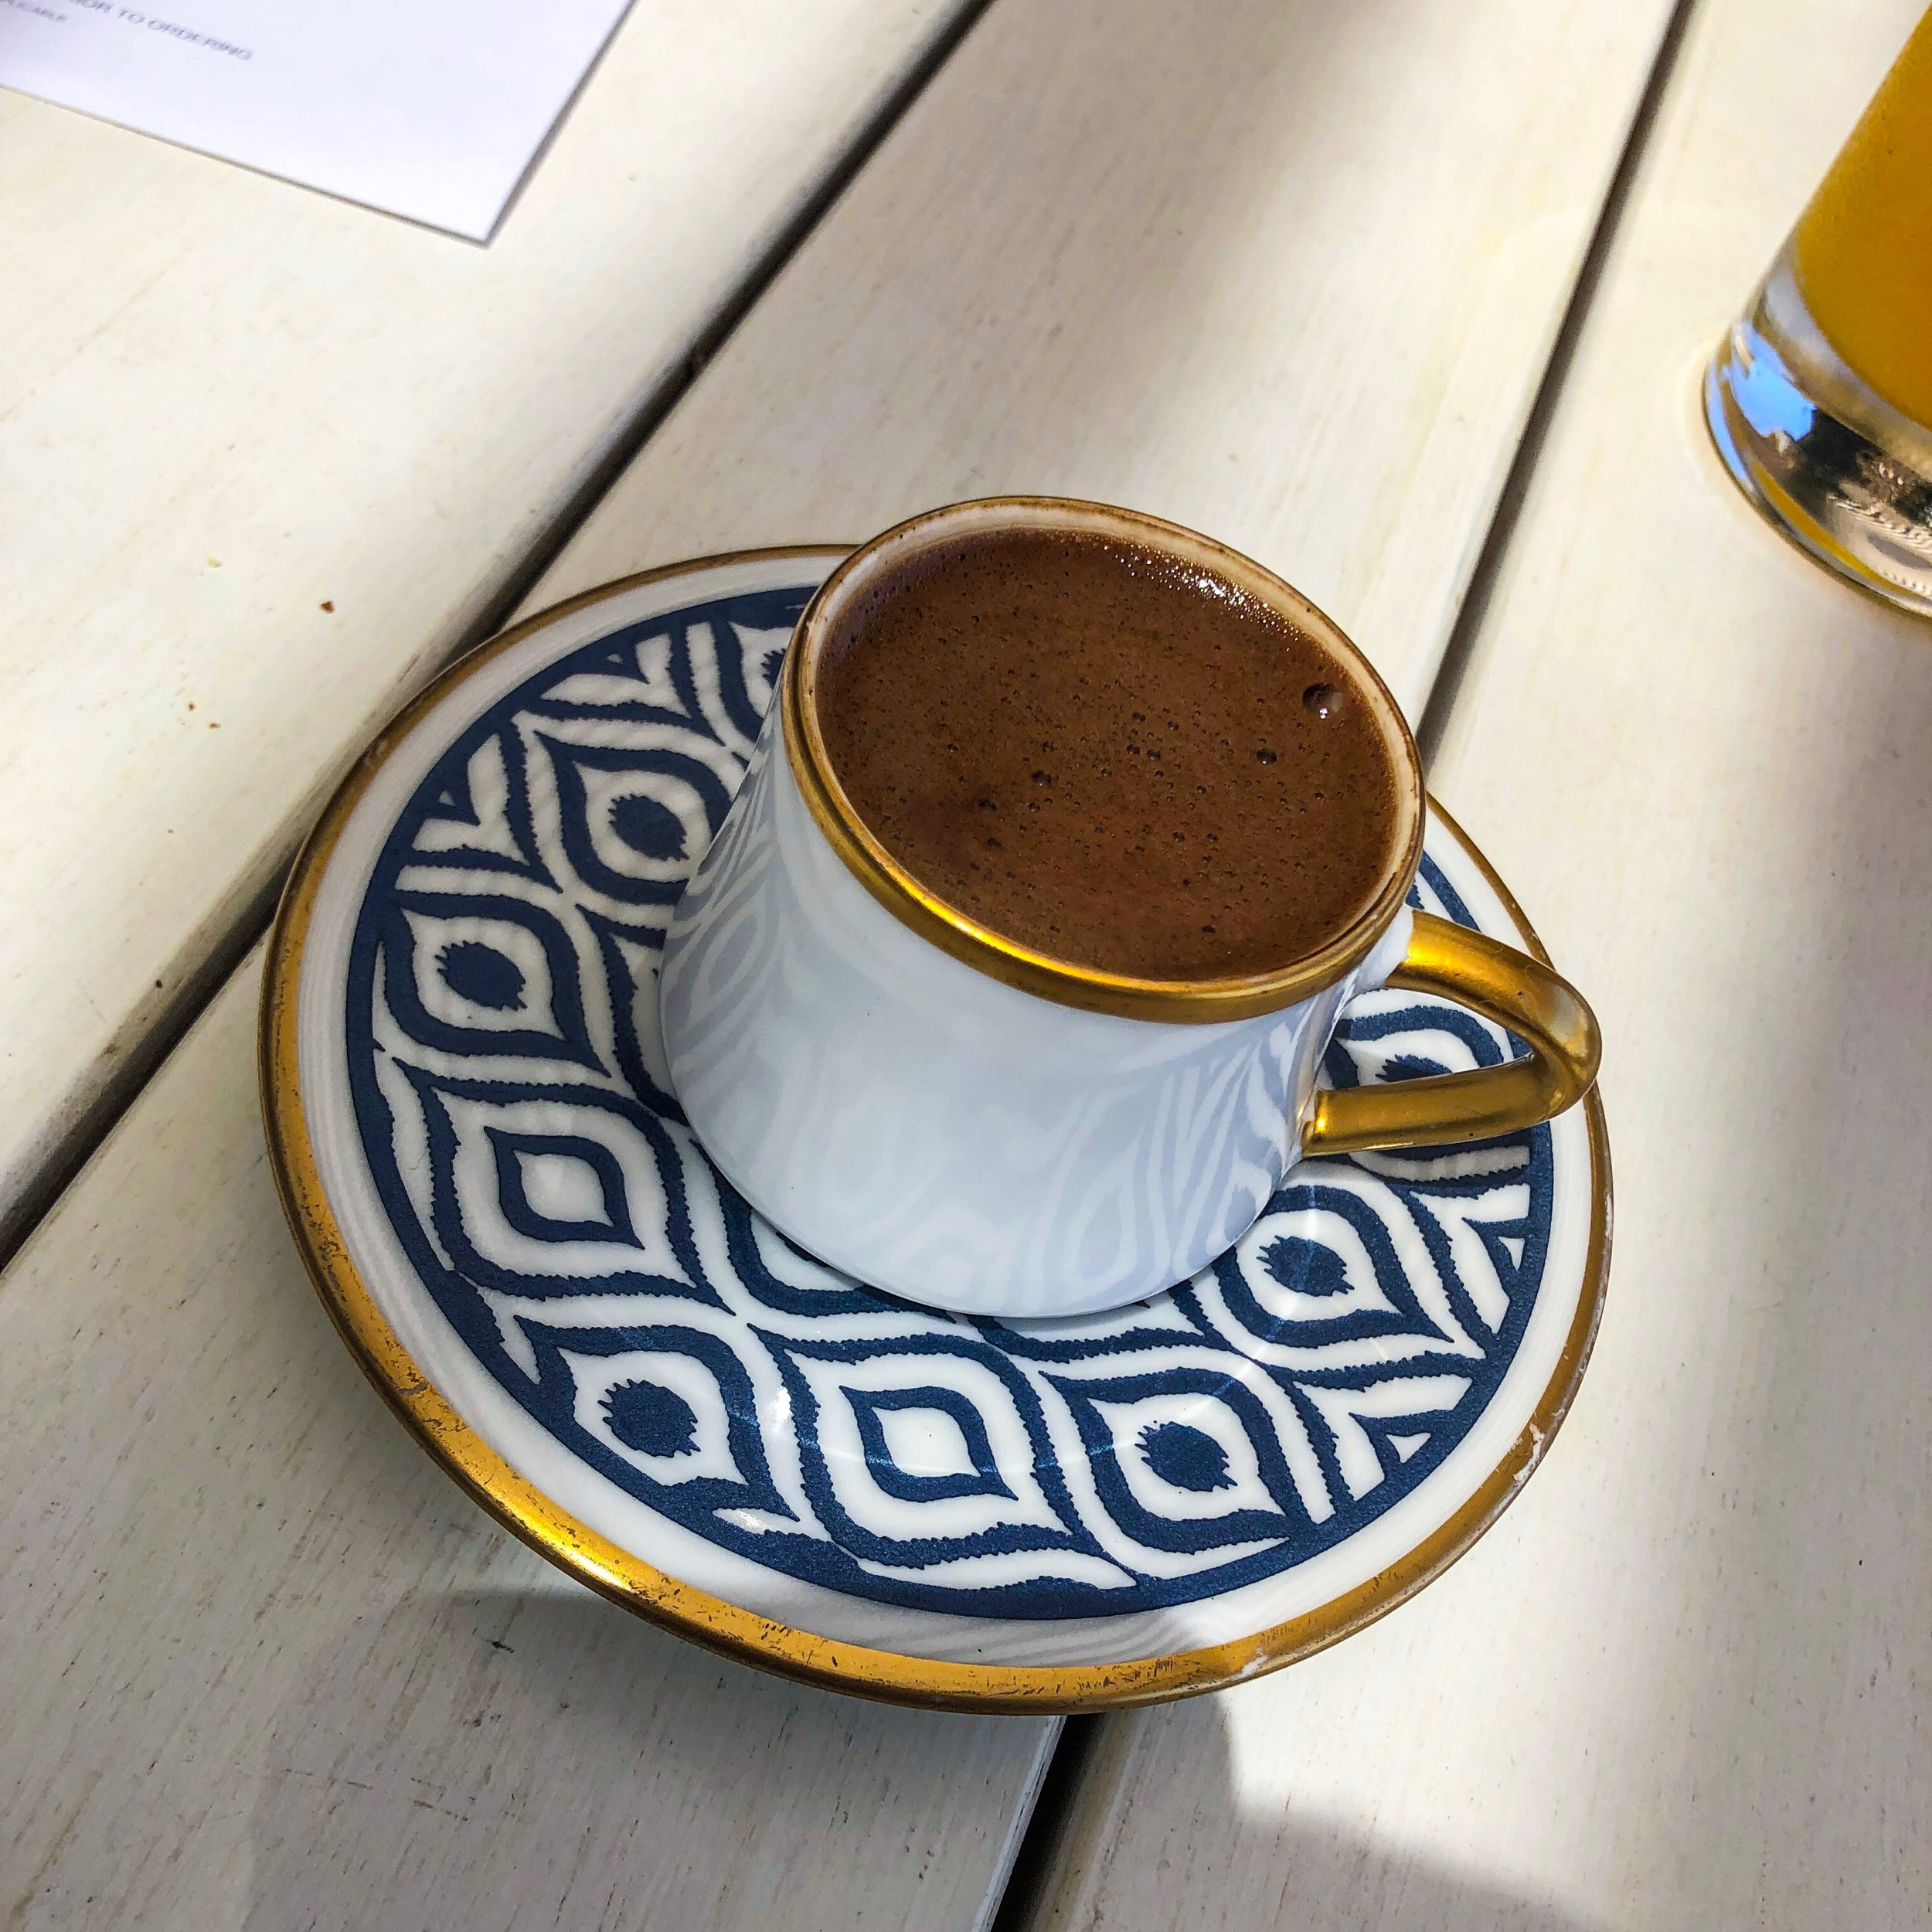 The Bodrum EDITION - Turkish Coffee